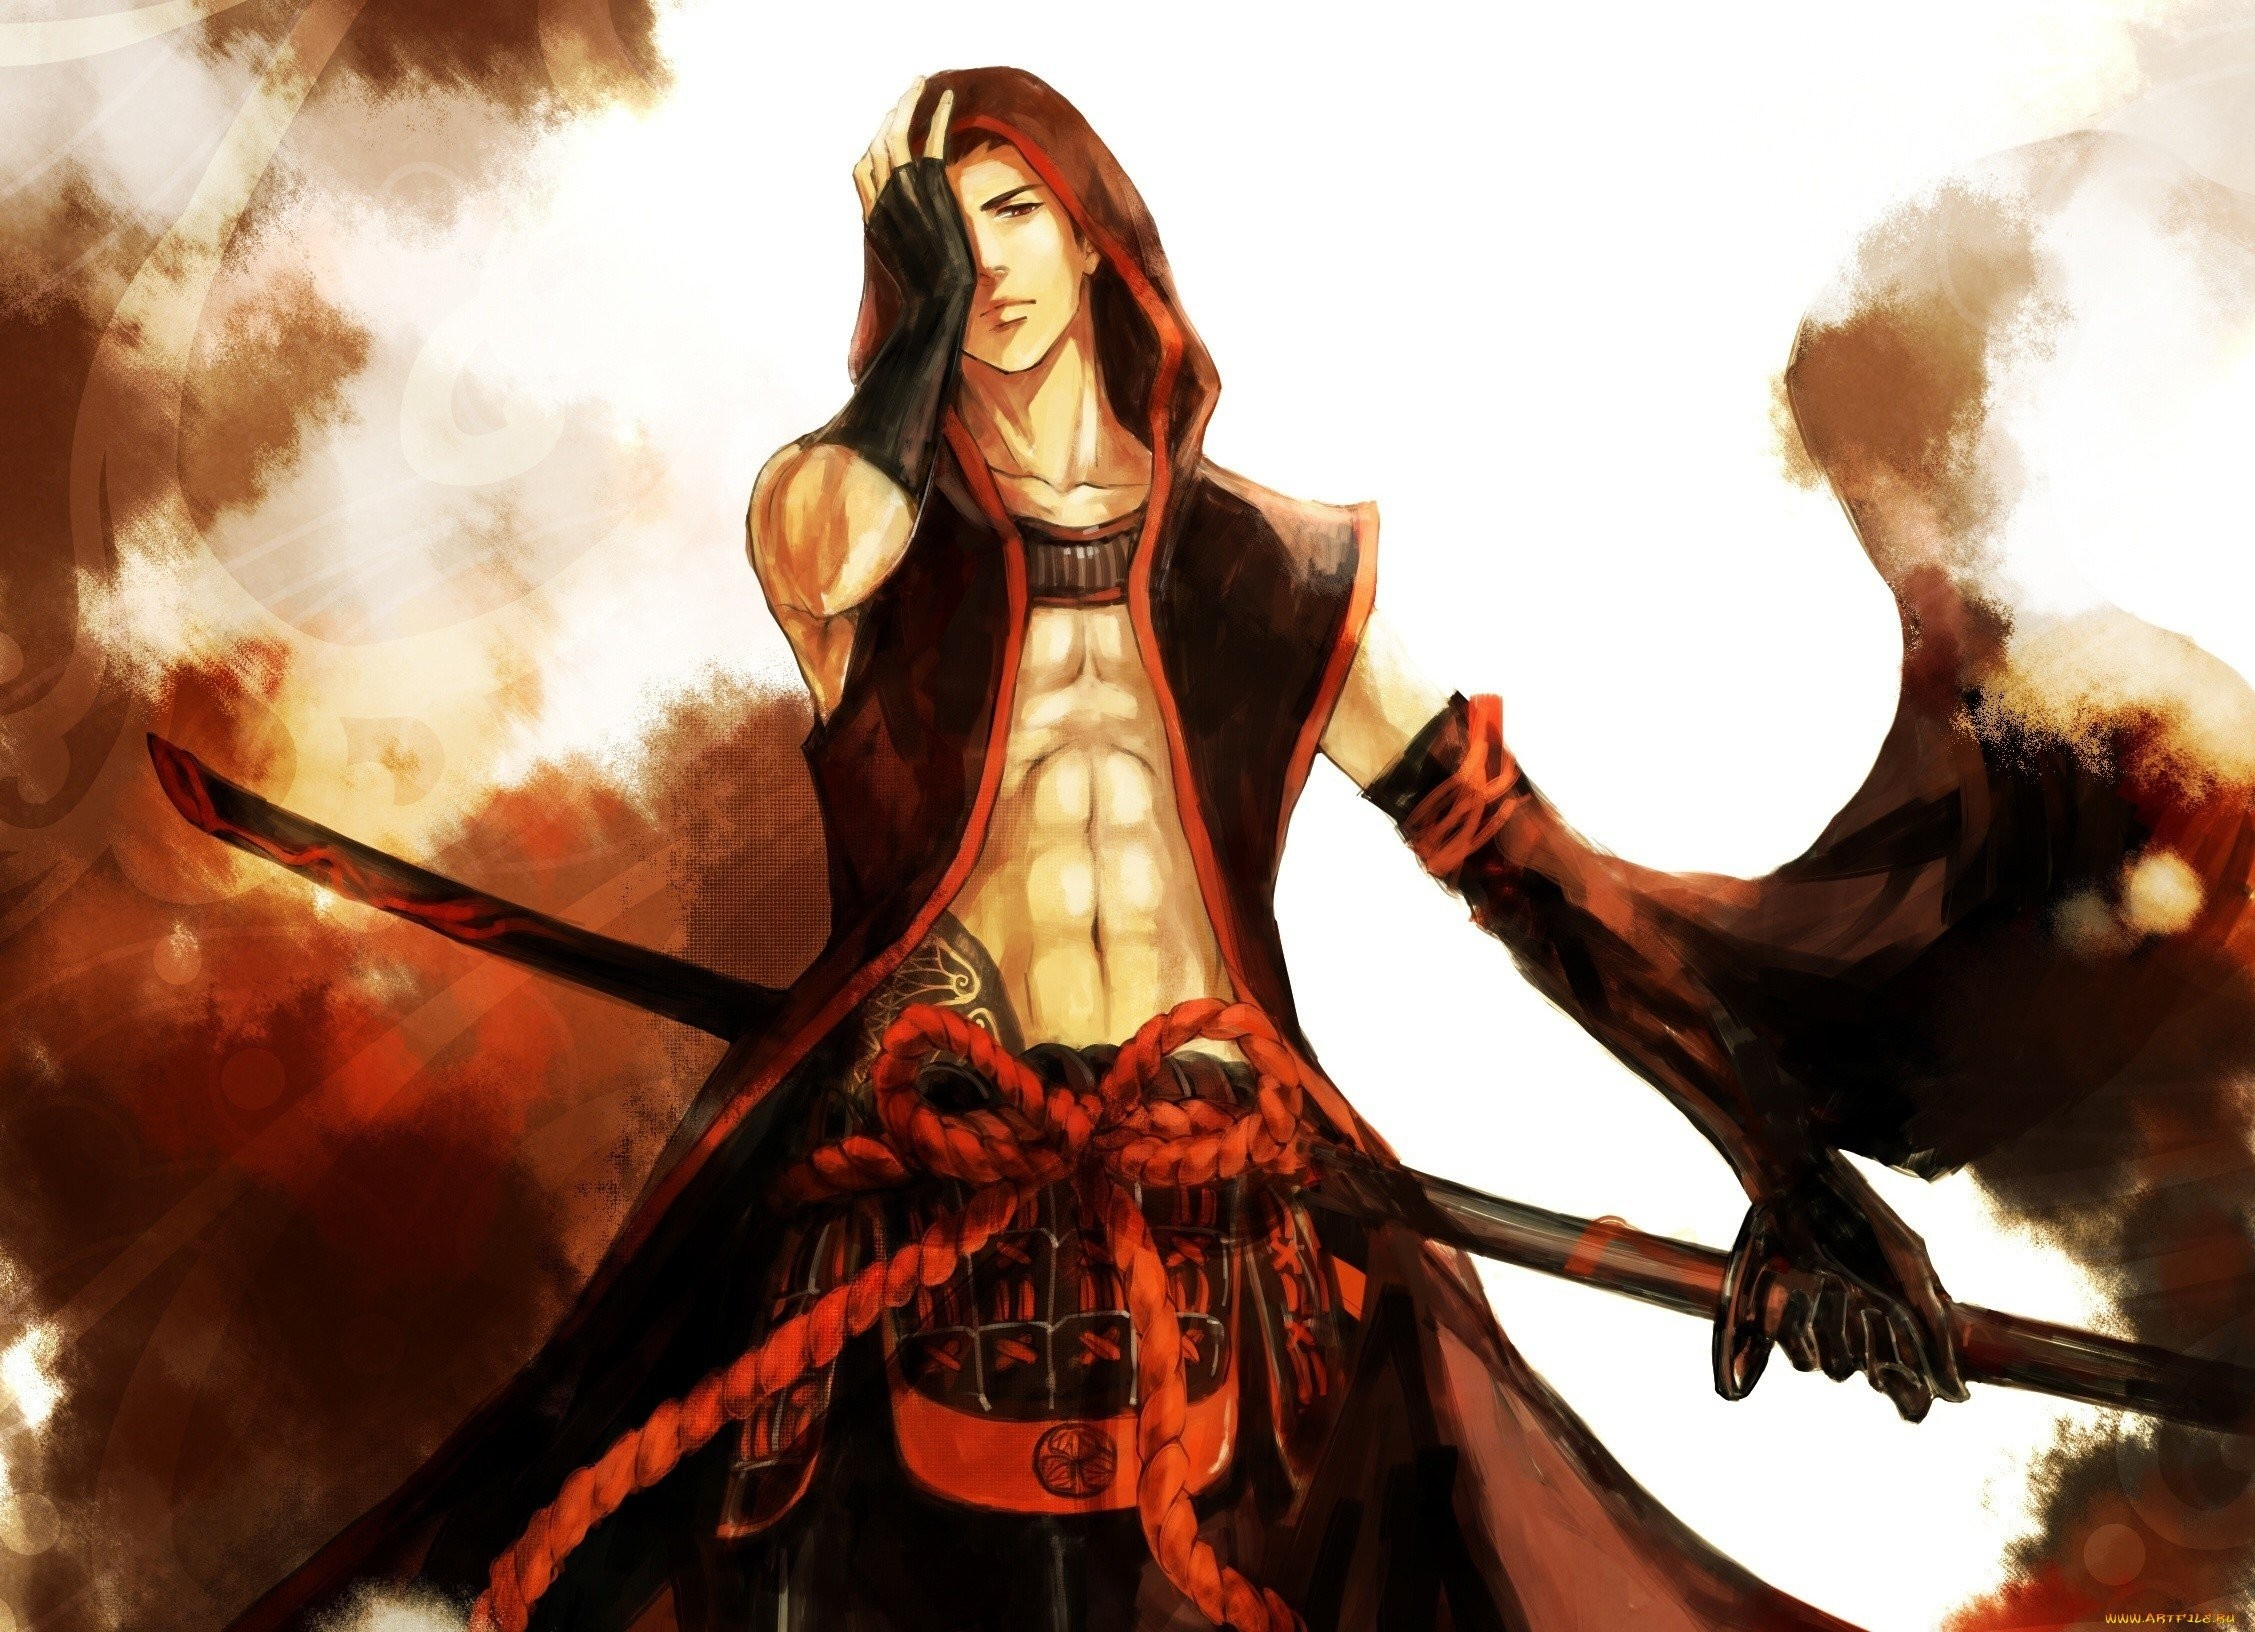 2255x1632 Anime character male sword warrior red wallpaper |  | 913280 |  WallpaperUP